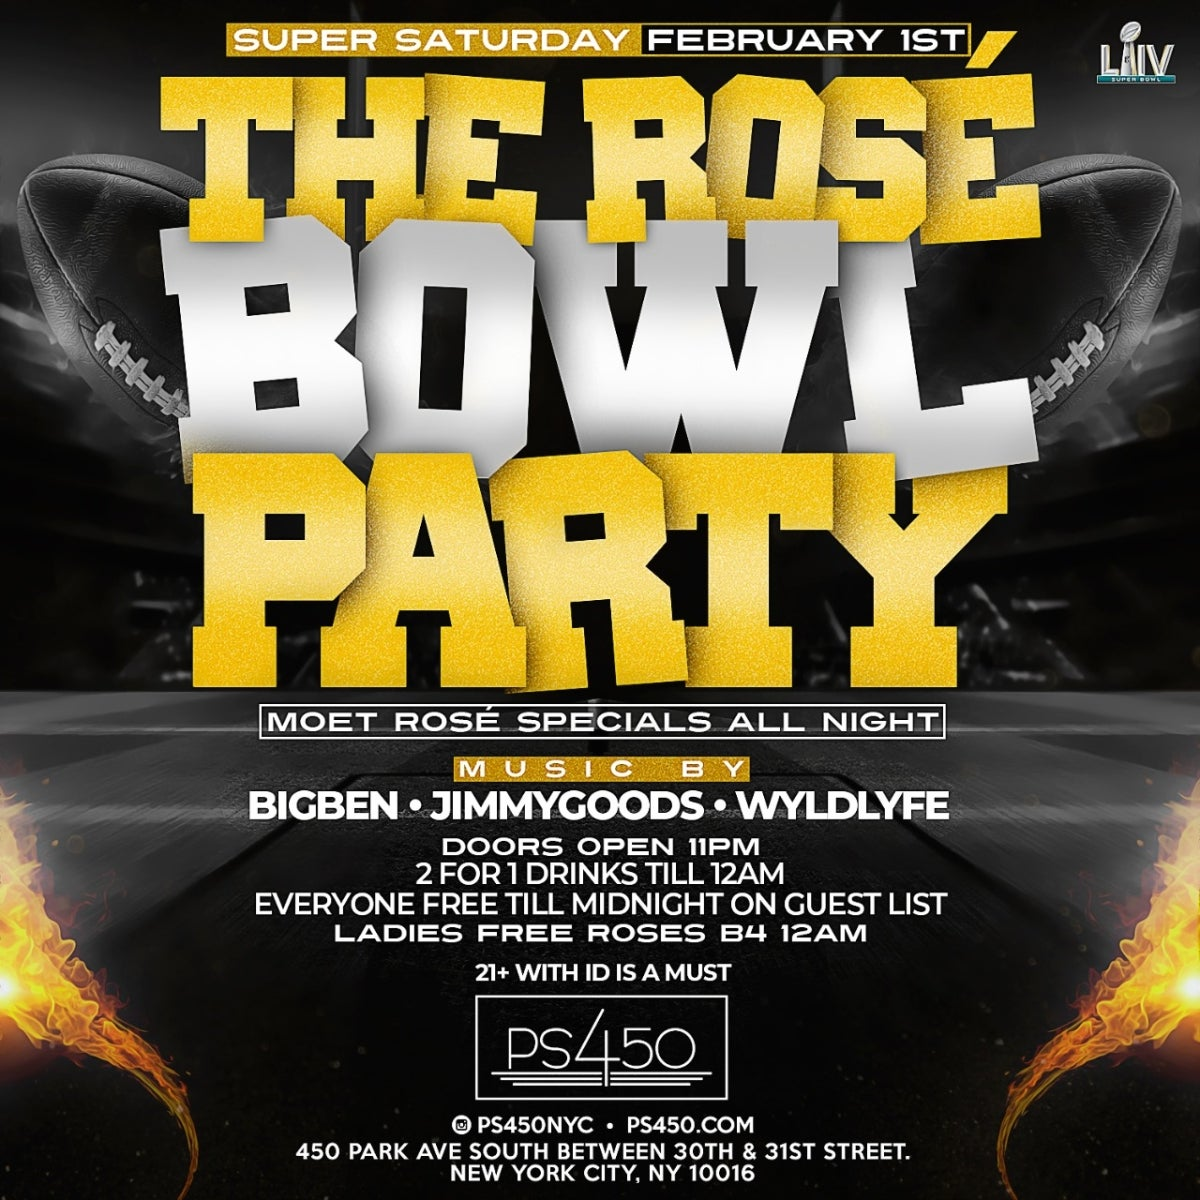 The Rose Bowl Party With Big Ben photo